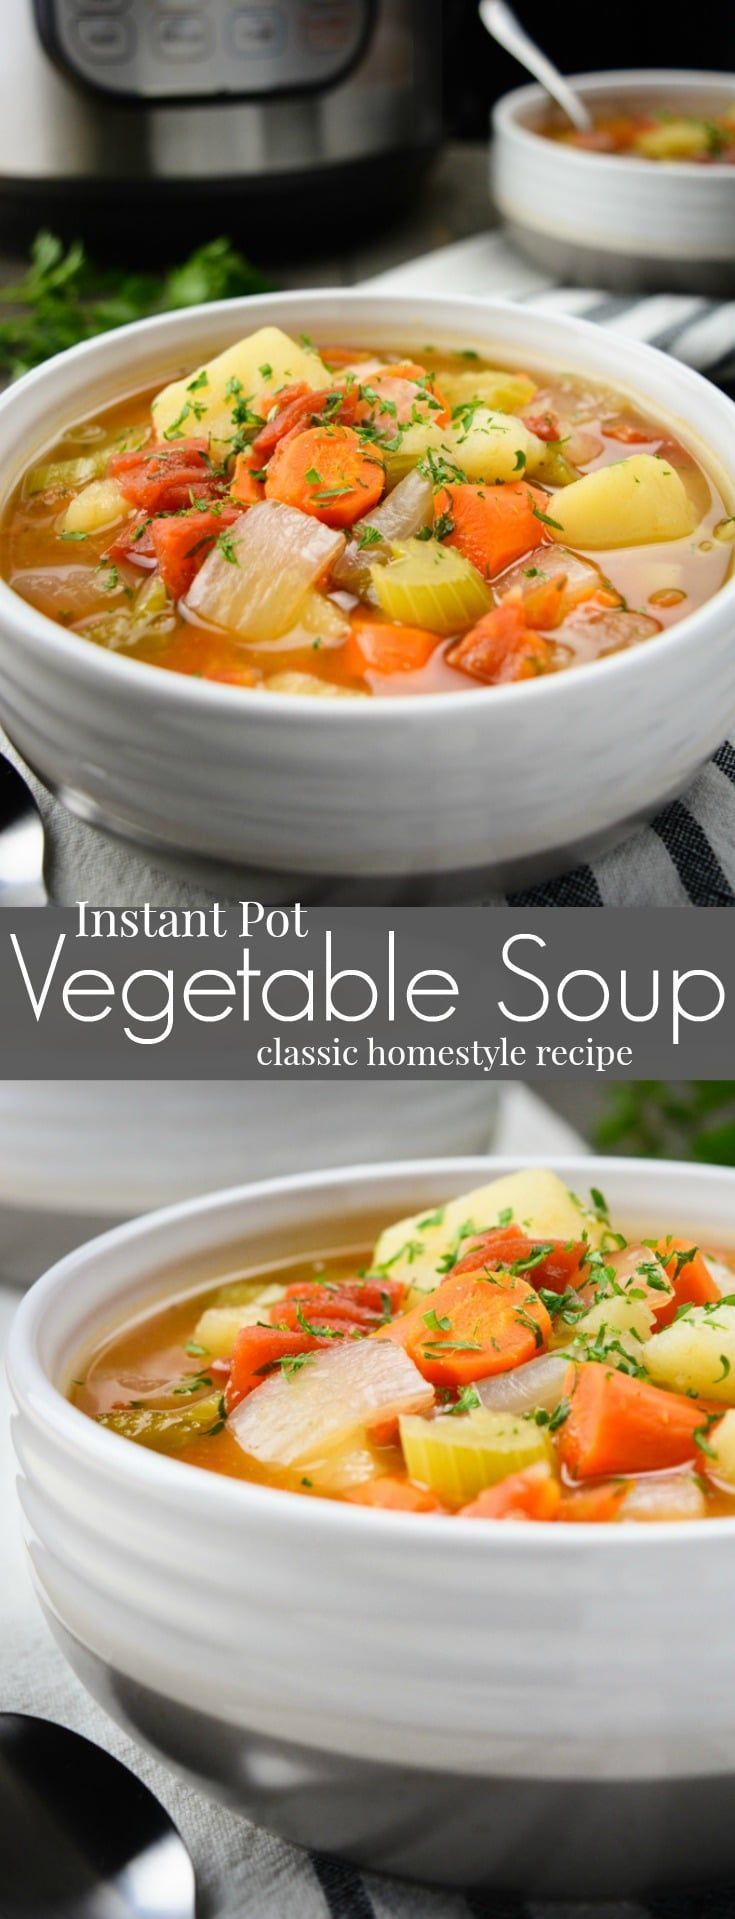 Instant Pot Vegetable Soup - Vegan | Where You Get Your Protein - Vegan Recipes #instantpotrecipeseasy